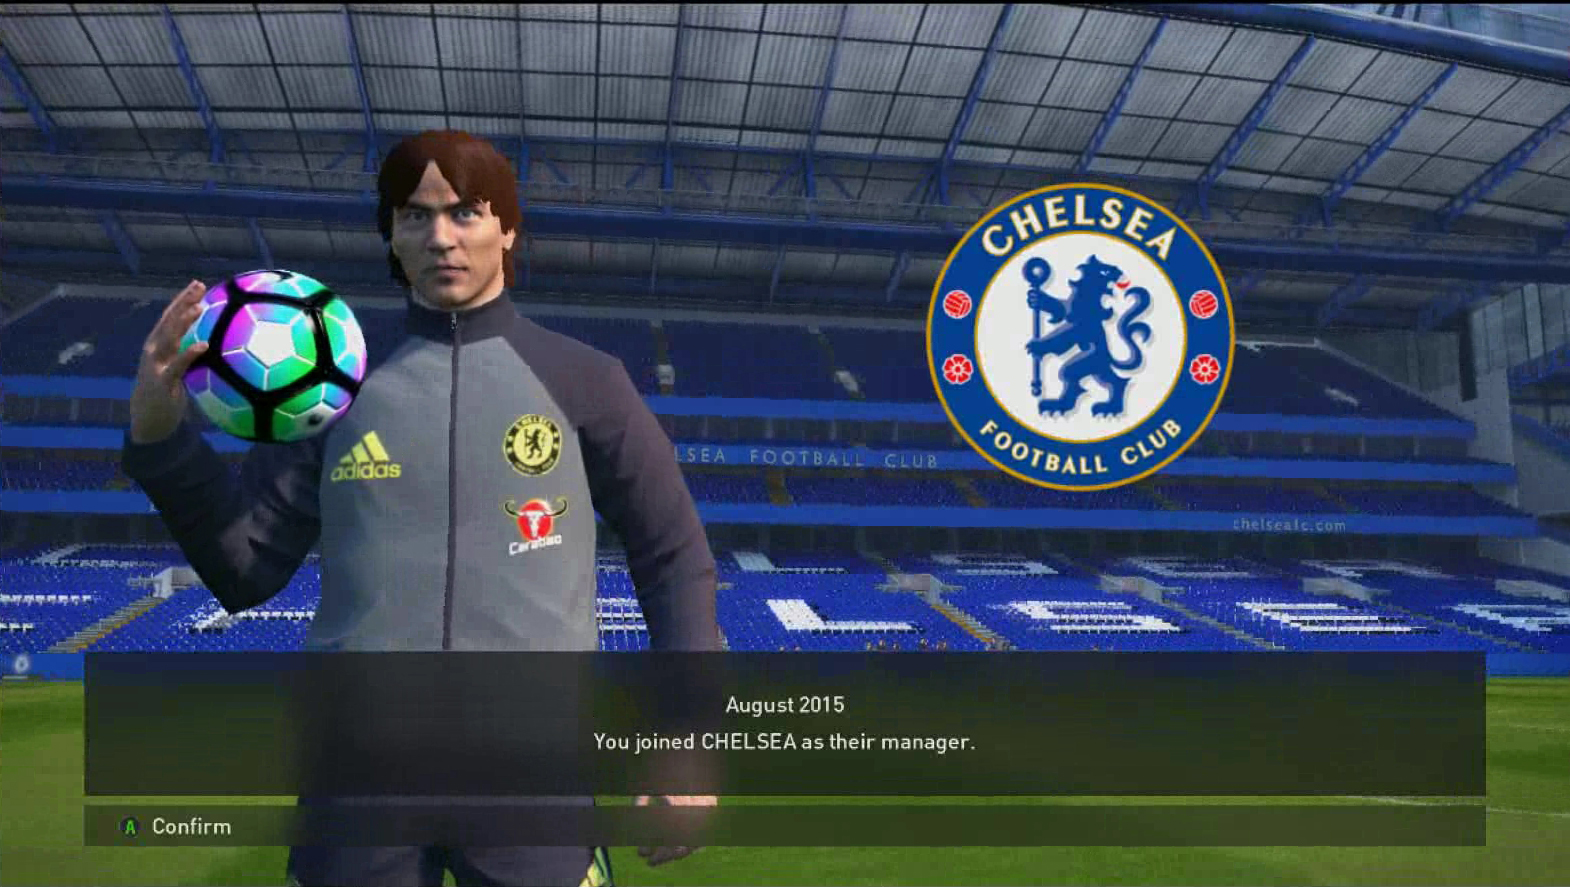 http://s8.picofile.com/file/8268987942/Manager_Kit_For_Chelsea.JPG